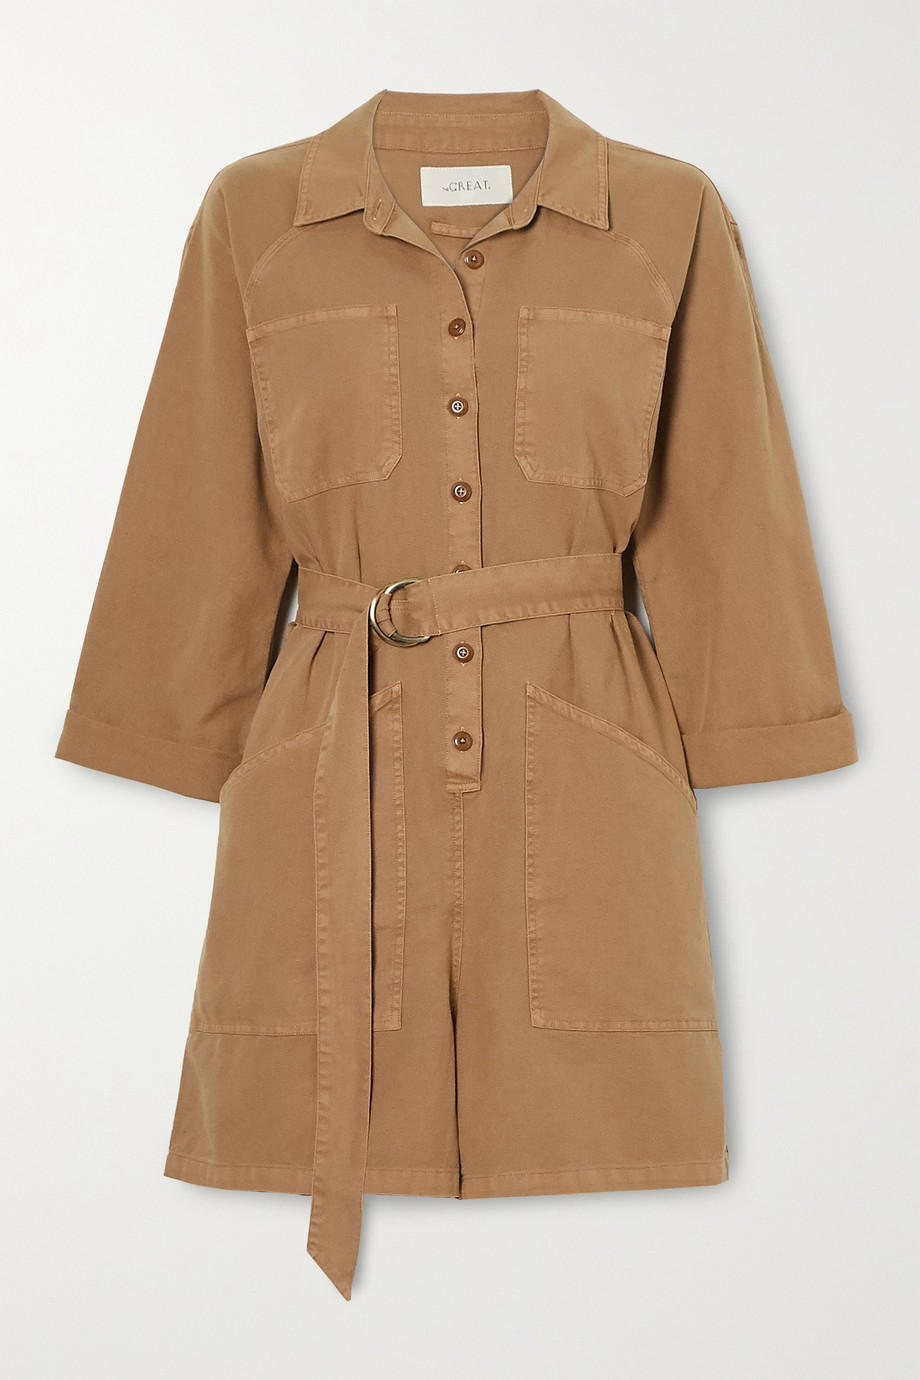 The Great The Short belted pleated cotton playsuit